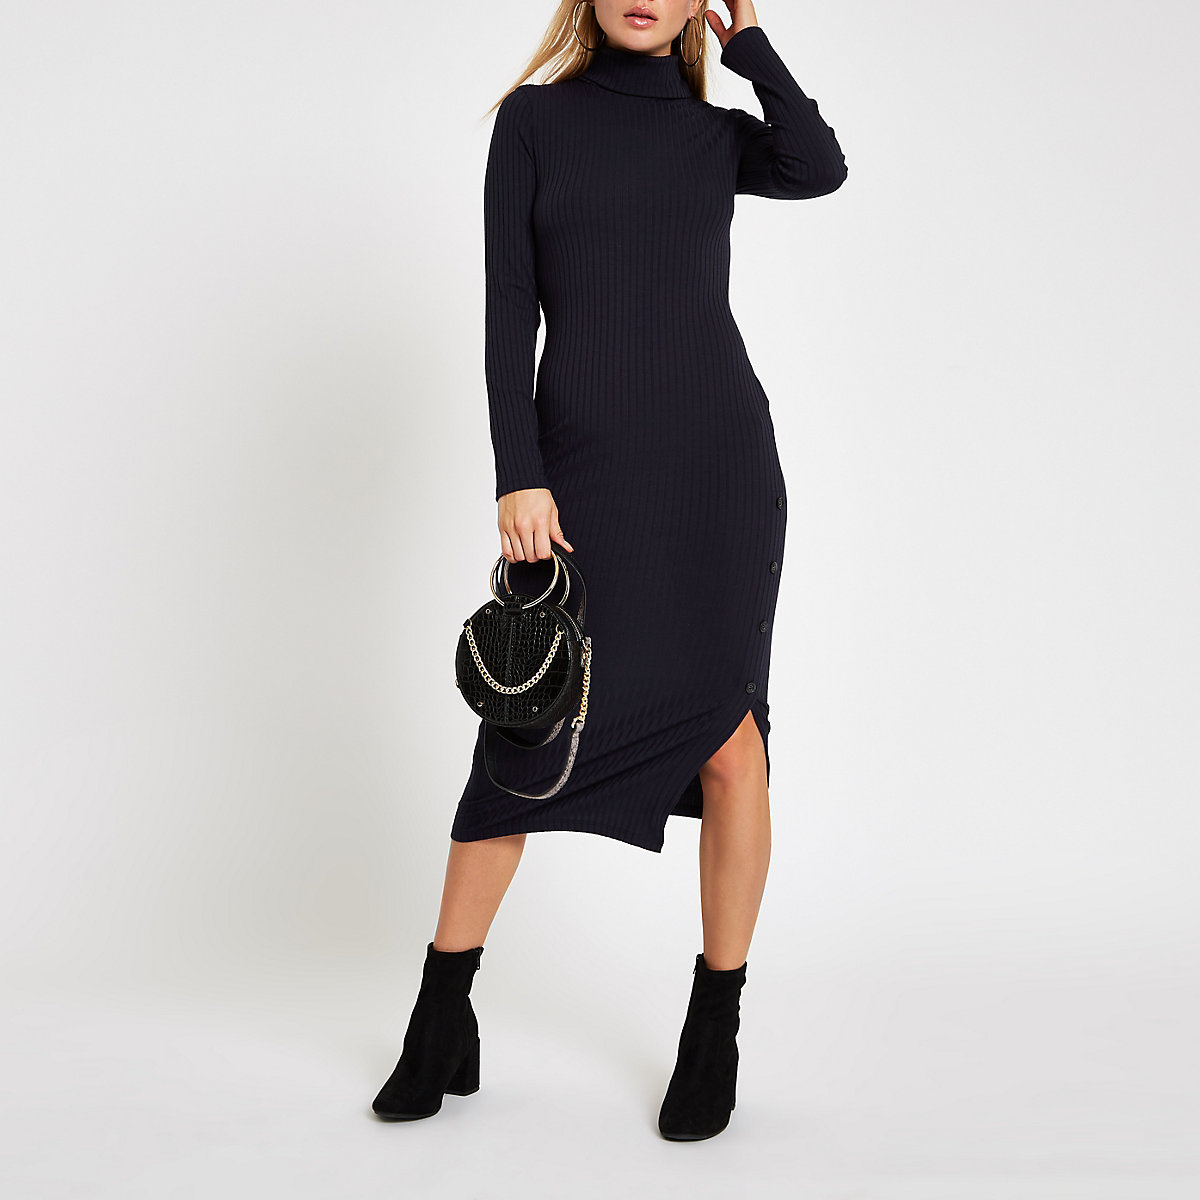 cdf304d6da Navy rib roll neck button side midi dress - Bodycon Dresses - Dresses -  women